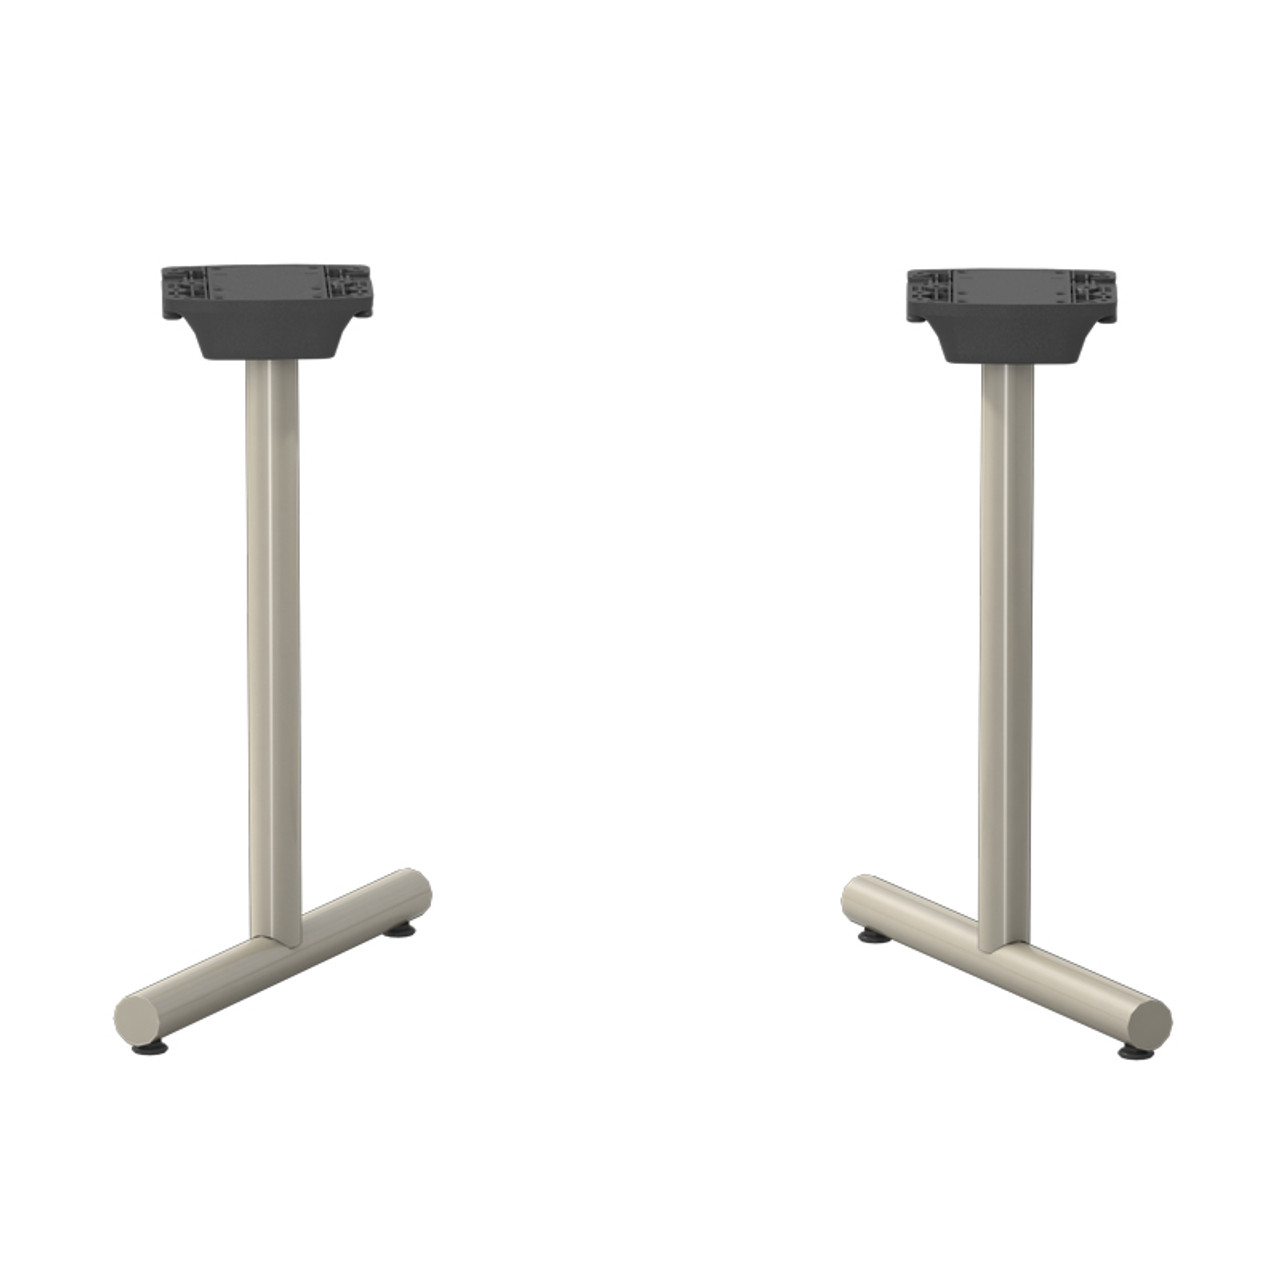 "SET OF 2, Tubular T-style Folding/Flip-Top Table Bases, 27-3/4"" Height, 18"" Base Spread, 2"" diameter Columns with adjustable Levelers. - Replacementtablelegs.com"